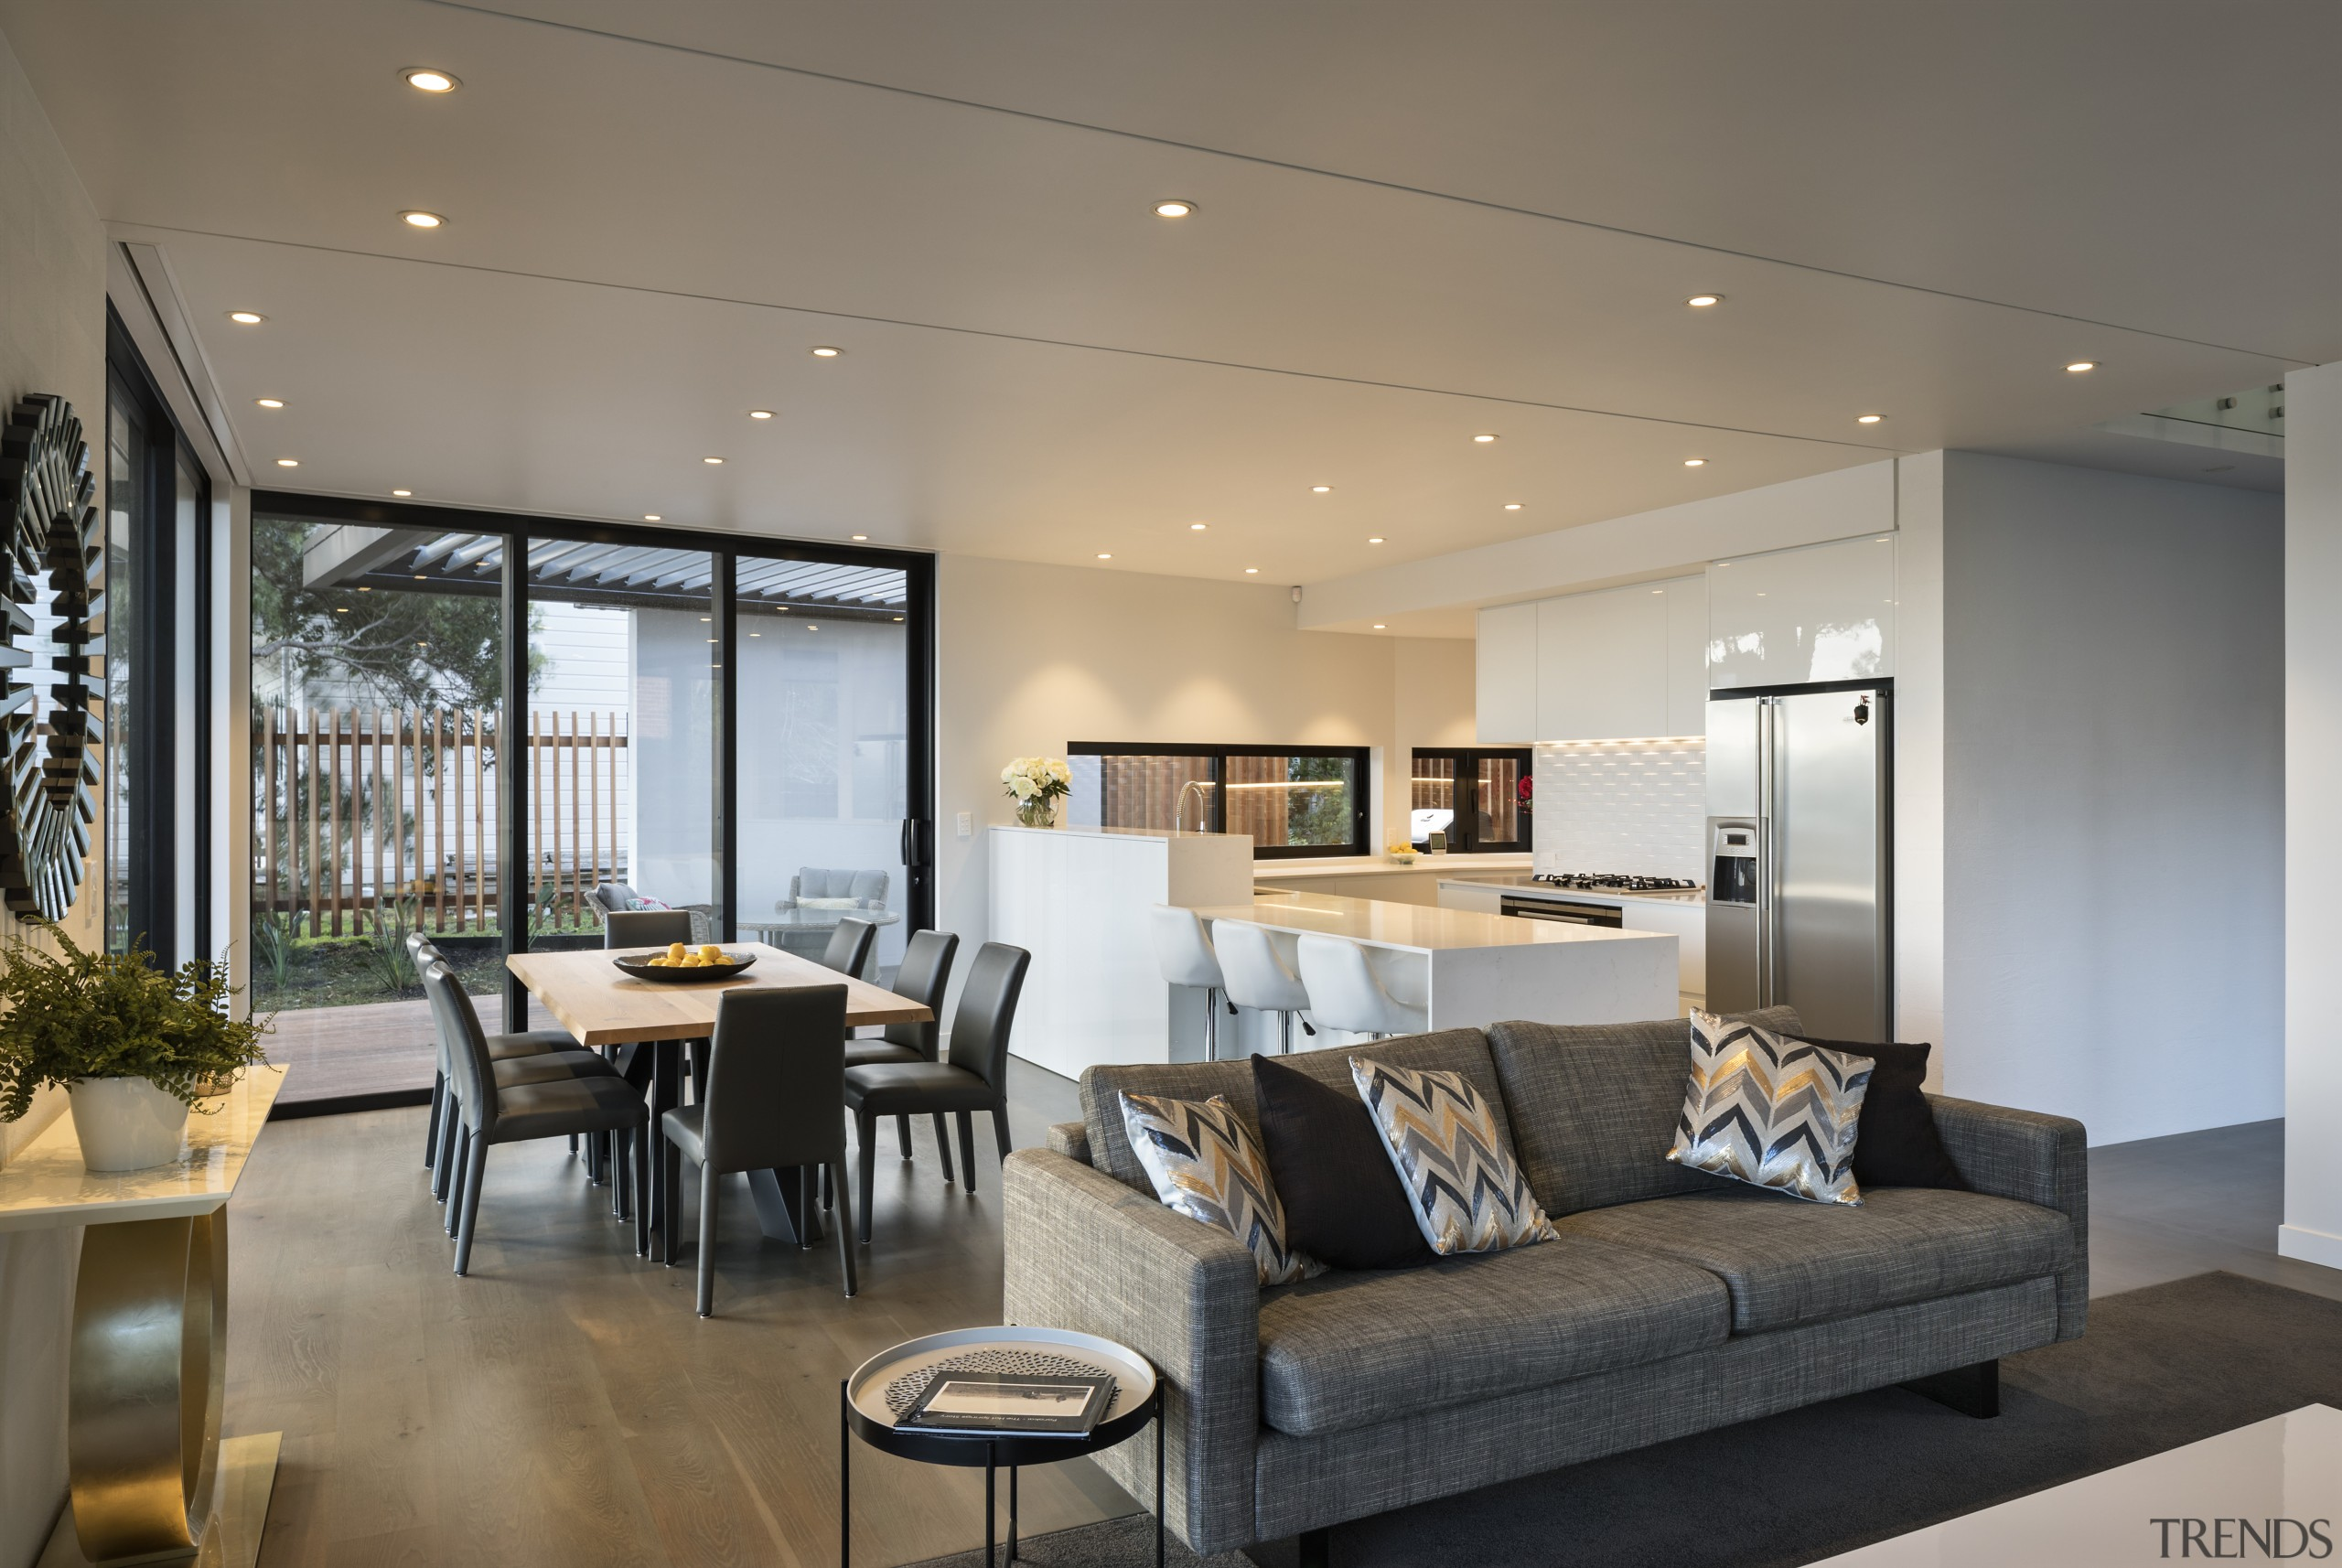 Open-plan living, kitchen and dining - It's a apartment, architecture, ceiling, house, interior design, living room, penthouse apartment, real estate, gray